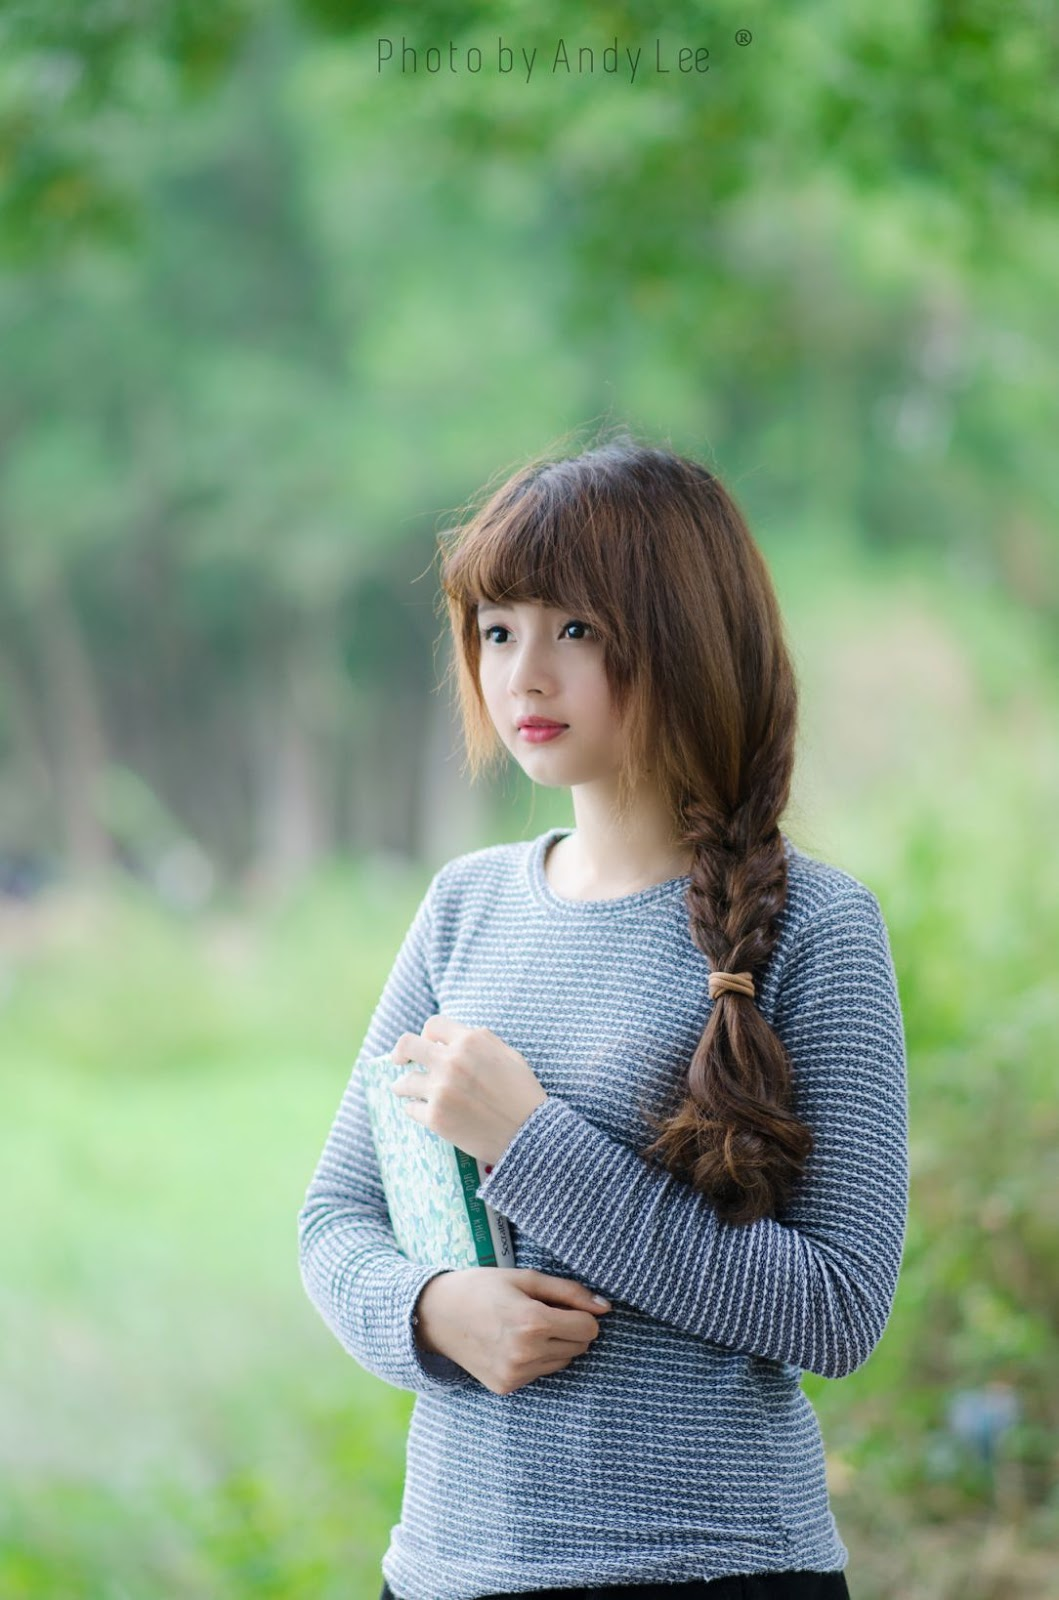 Le Ly Lan Huong - 191215 - Vietnamese cute model - TruePic.net